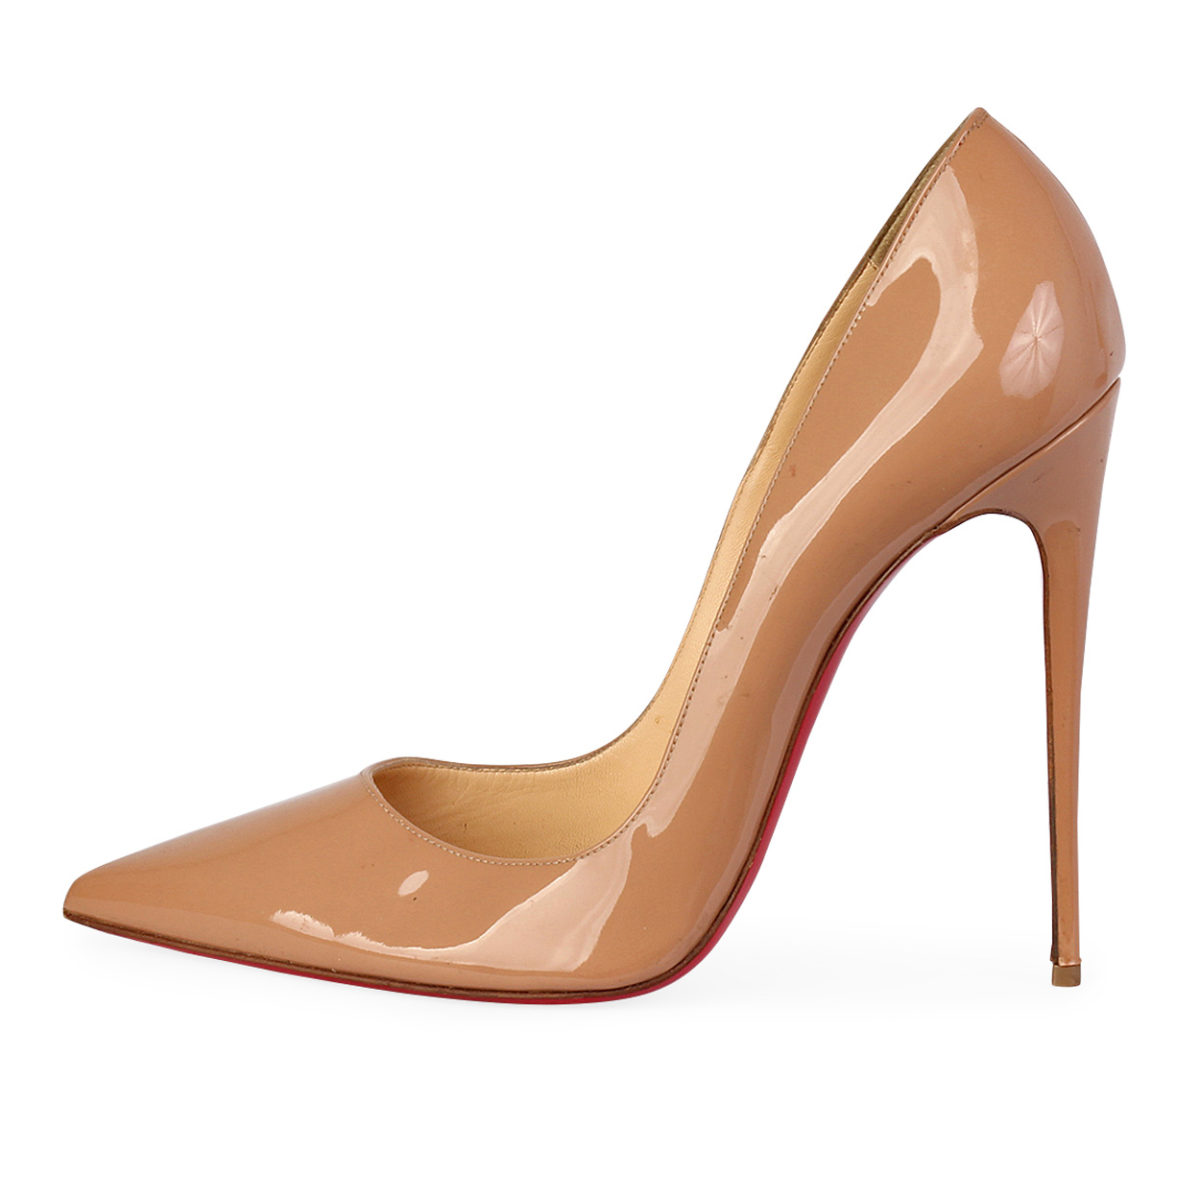 5574ce66cb8 CHRISTIAN LOUBOUTIN Patent Leather So Kate Pumps Nude - S  41 (7 ...